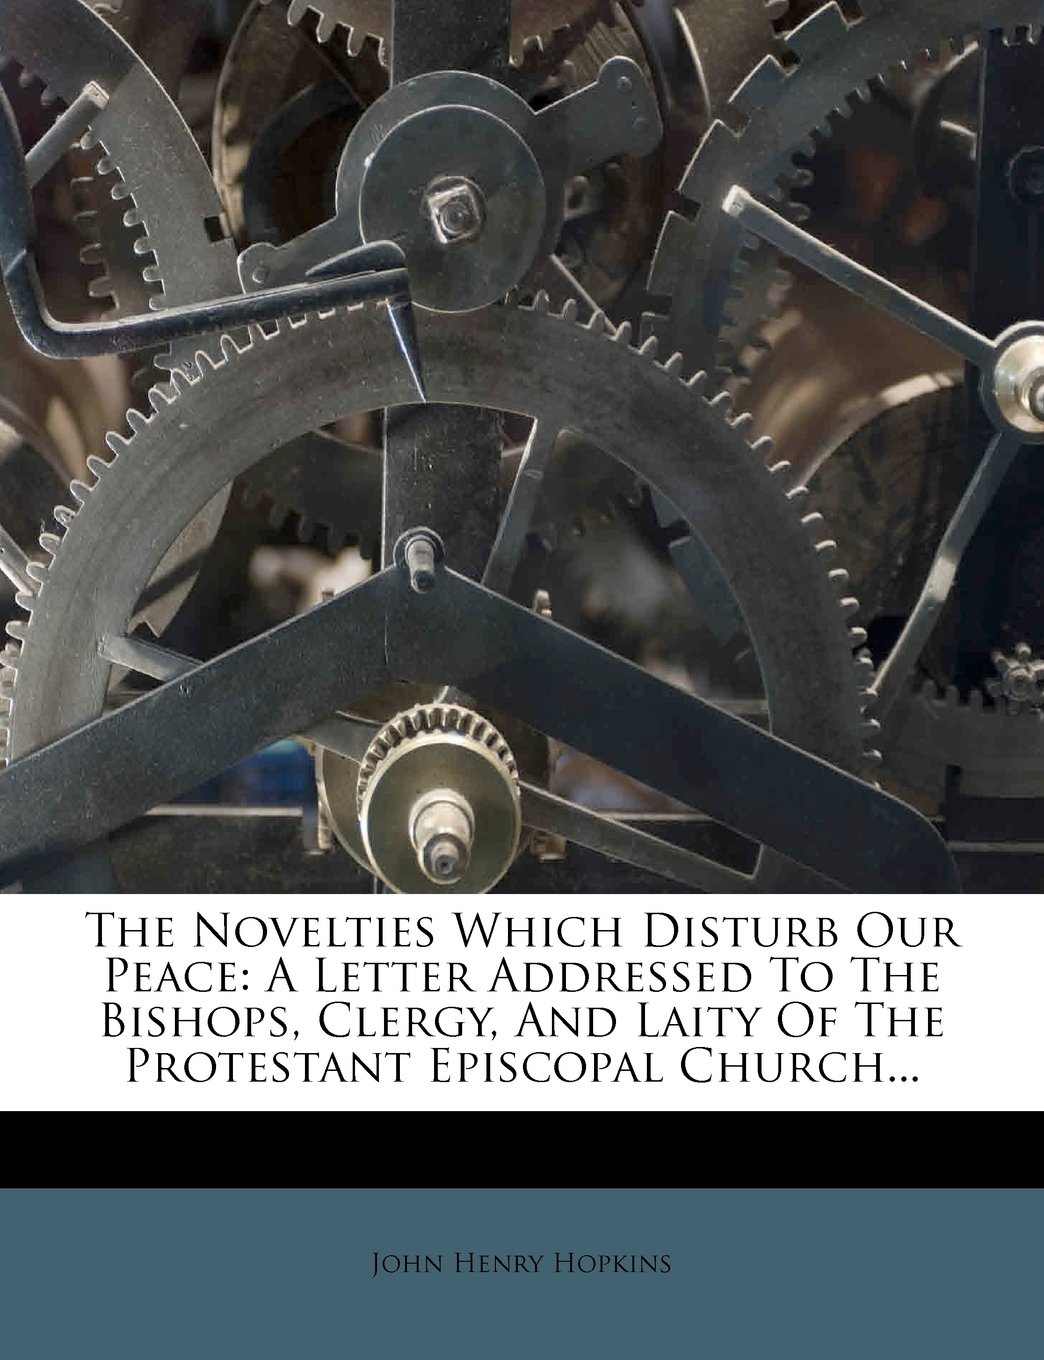 Download The Novelties Which Disturb Our Peace: A Letter Addressed To The Bishops, Clergy, And Laity Of The Protestant Episcopal Church... PDF